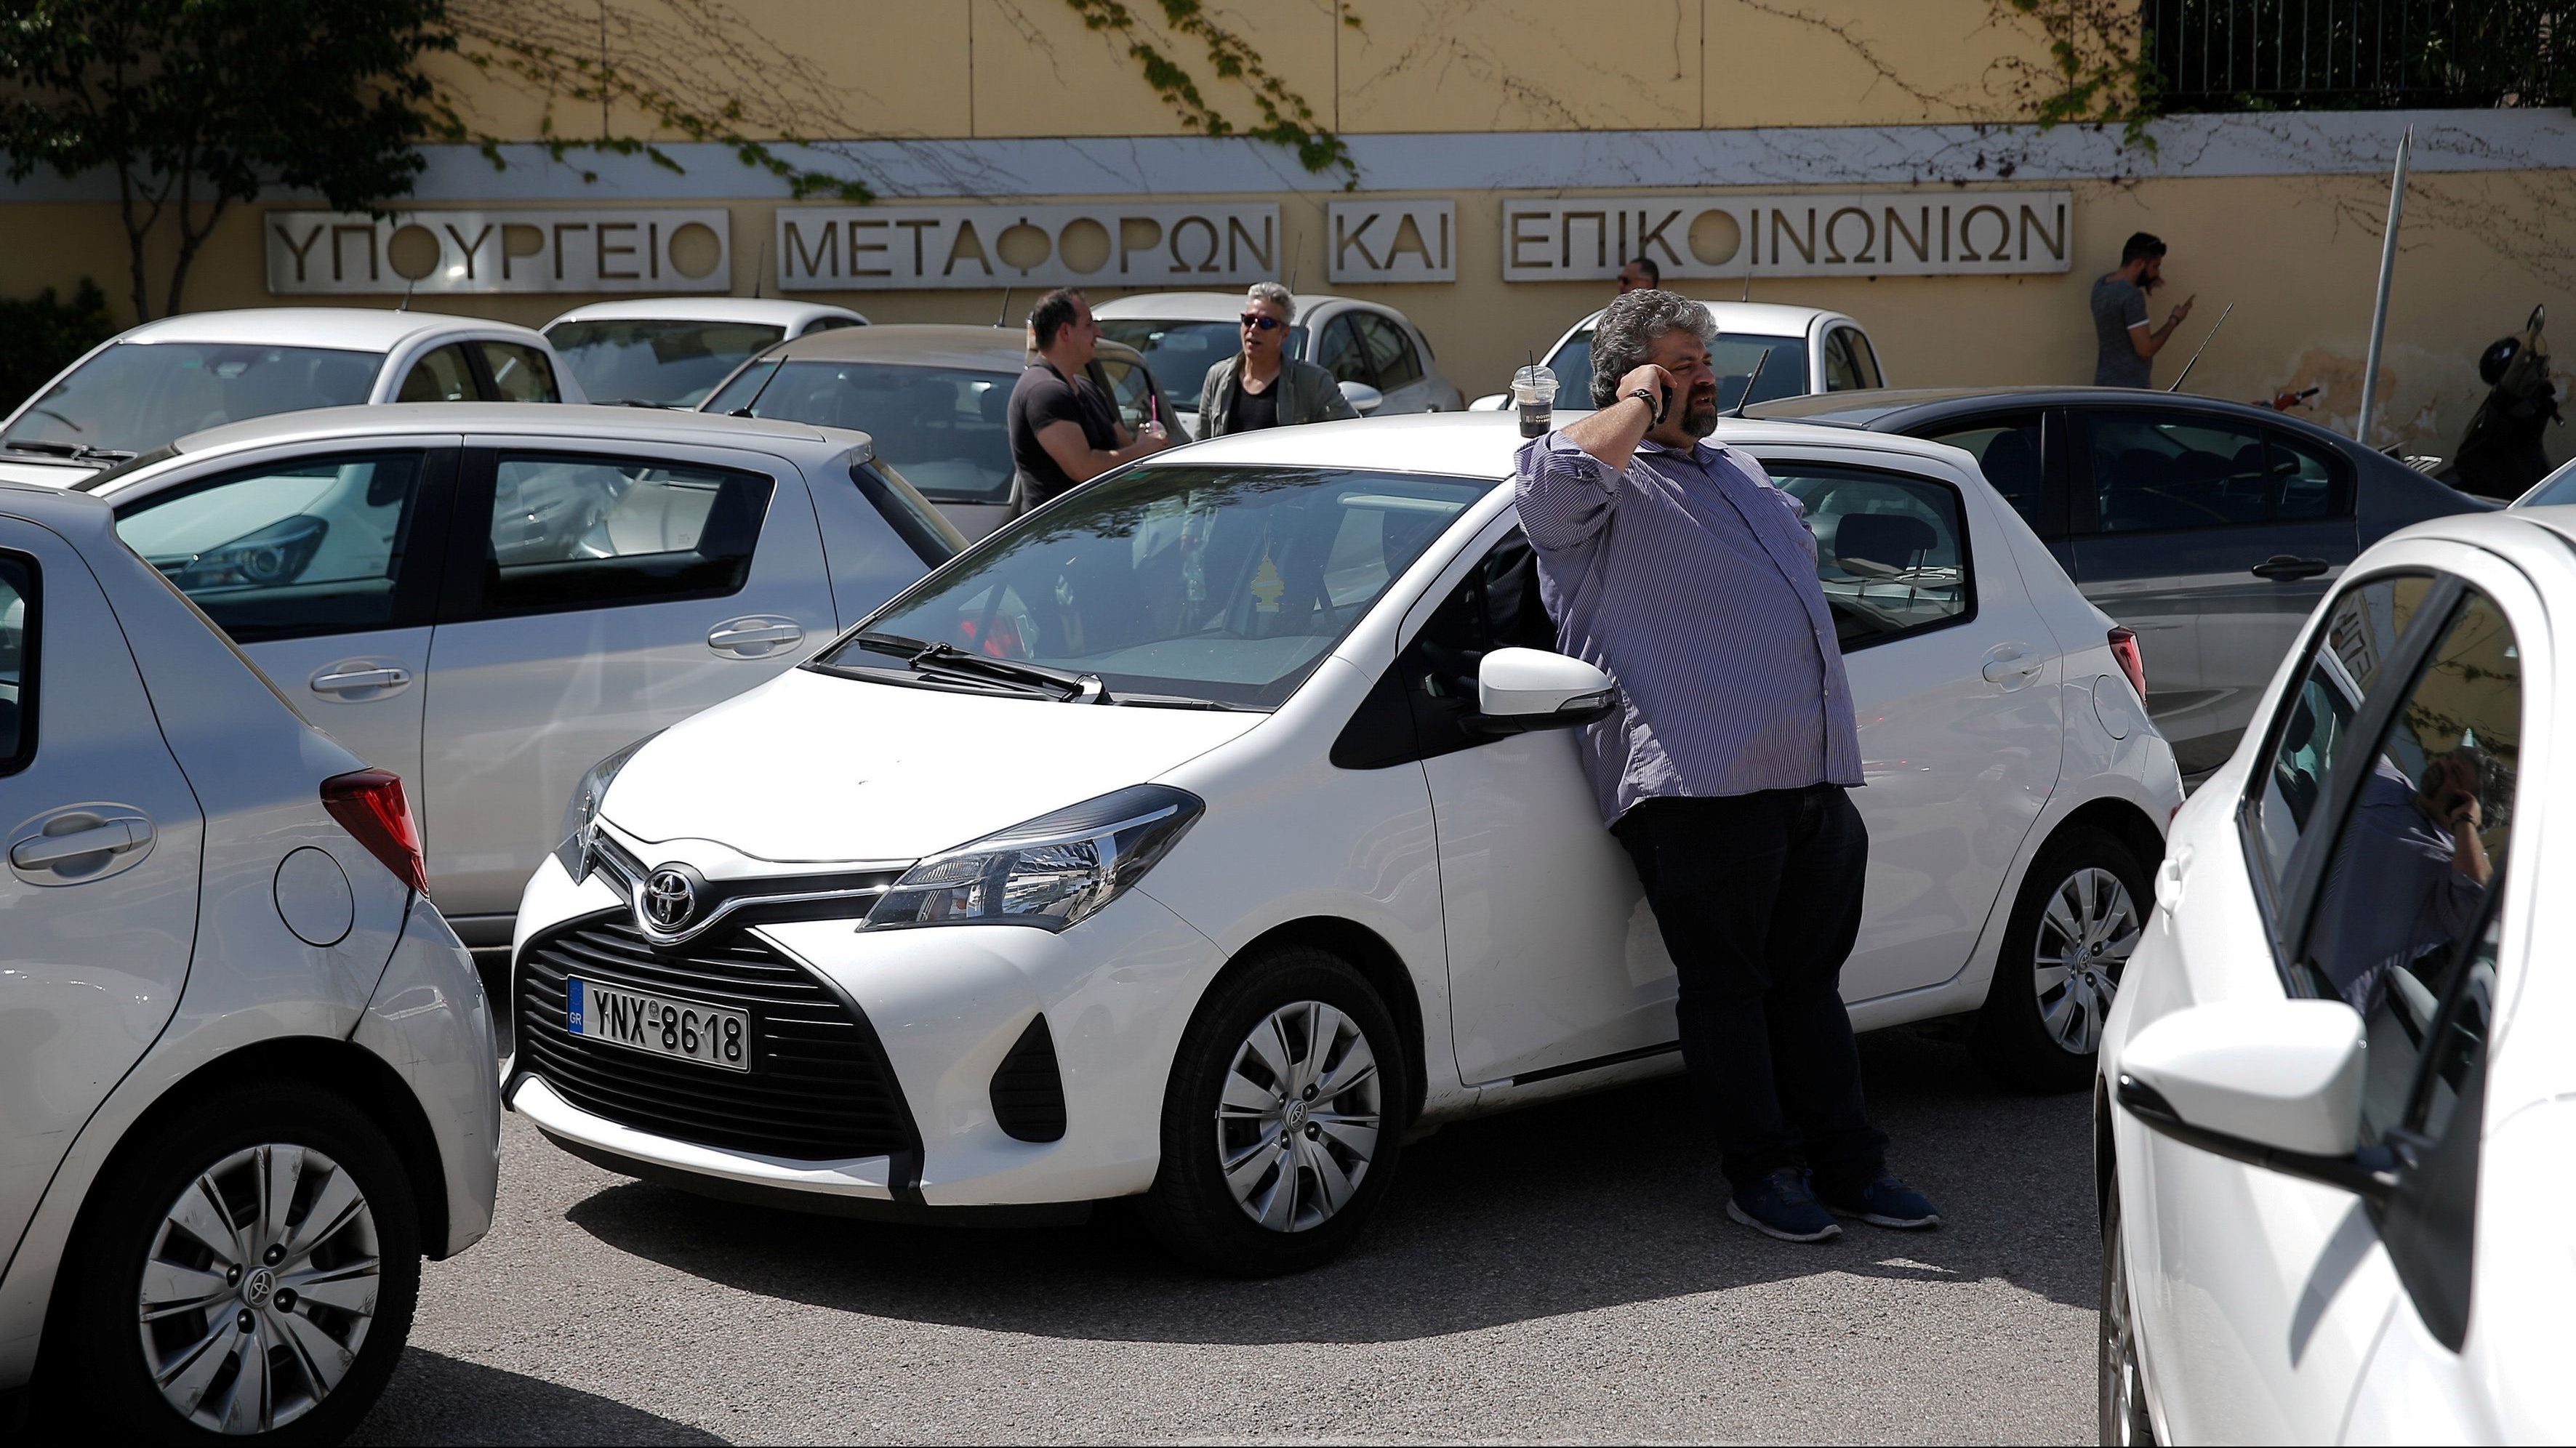 UberX drivers take part in a protest outside the Ministry of Infrastructure, Transport and Networks building in Athens, Greece April 5, 2018. REUTERS/Costas Baltas - RC11FA1B2D30